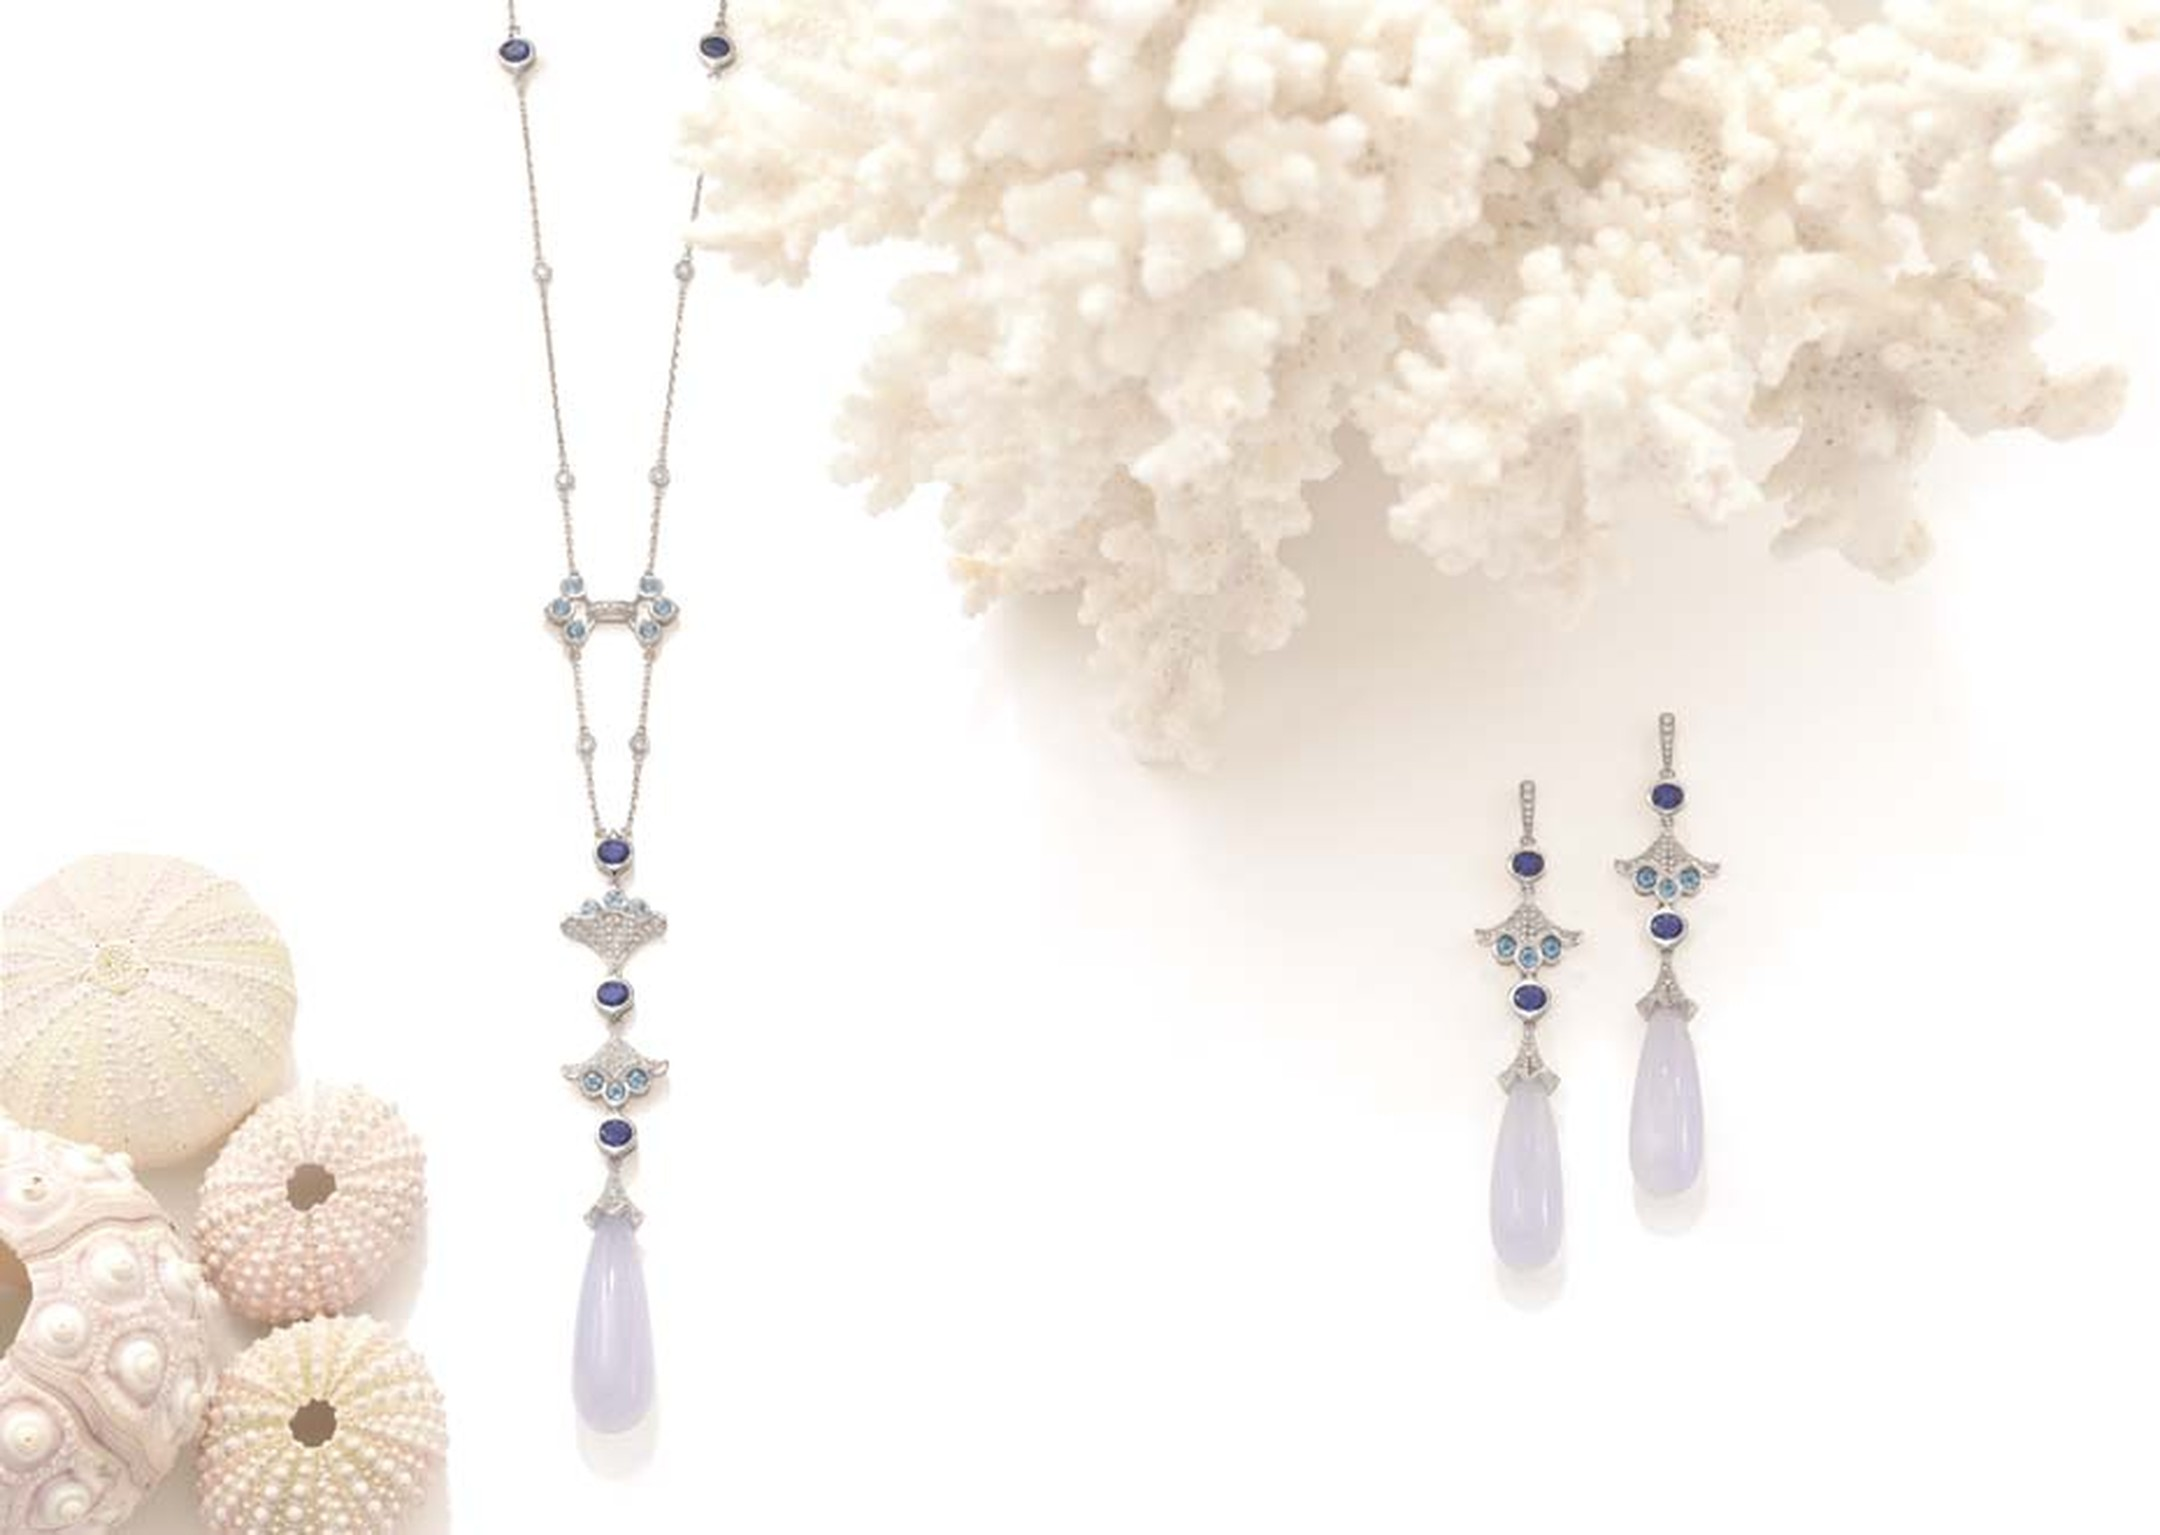 Boodles Ocean Moon necklace and earrings with chalcedony, tanzanite and diamonds, from the new 'Ocean of Dreams' collection.